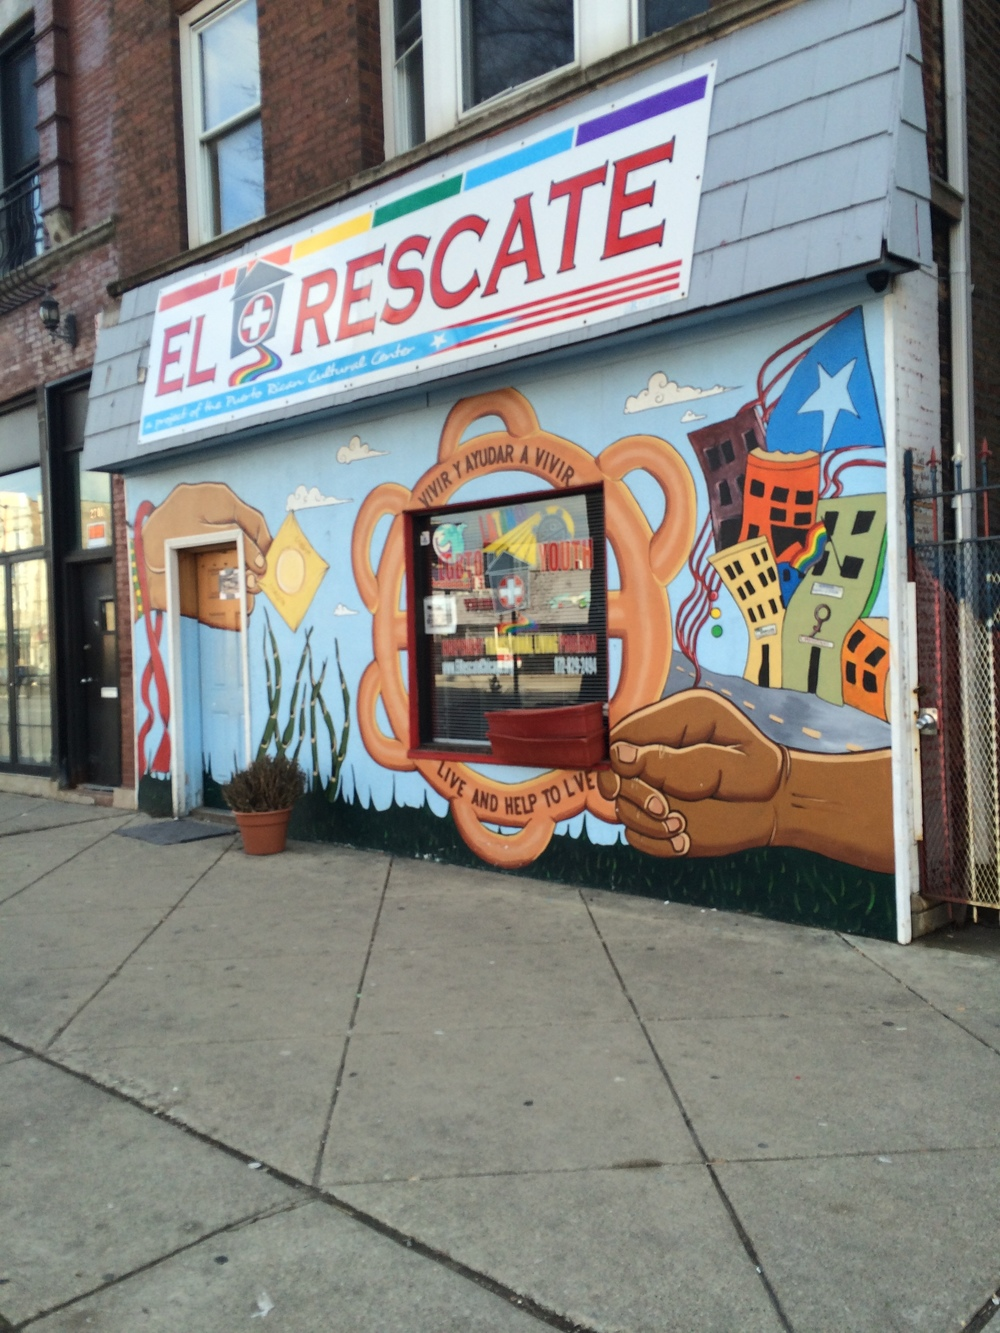 Any leftover soup from the event was donated to El Rescate in Humboldt Park so nothing went to waste.